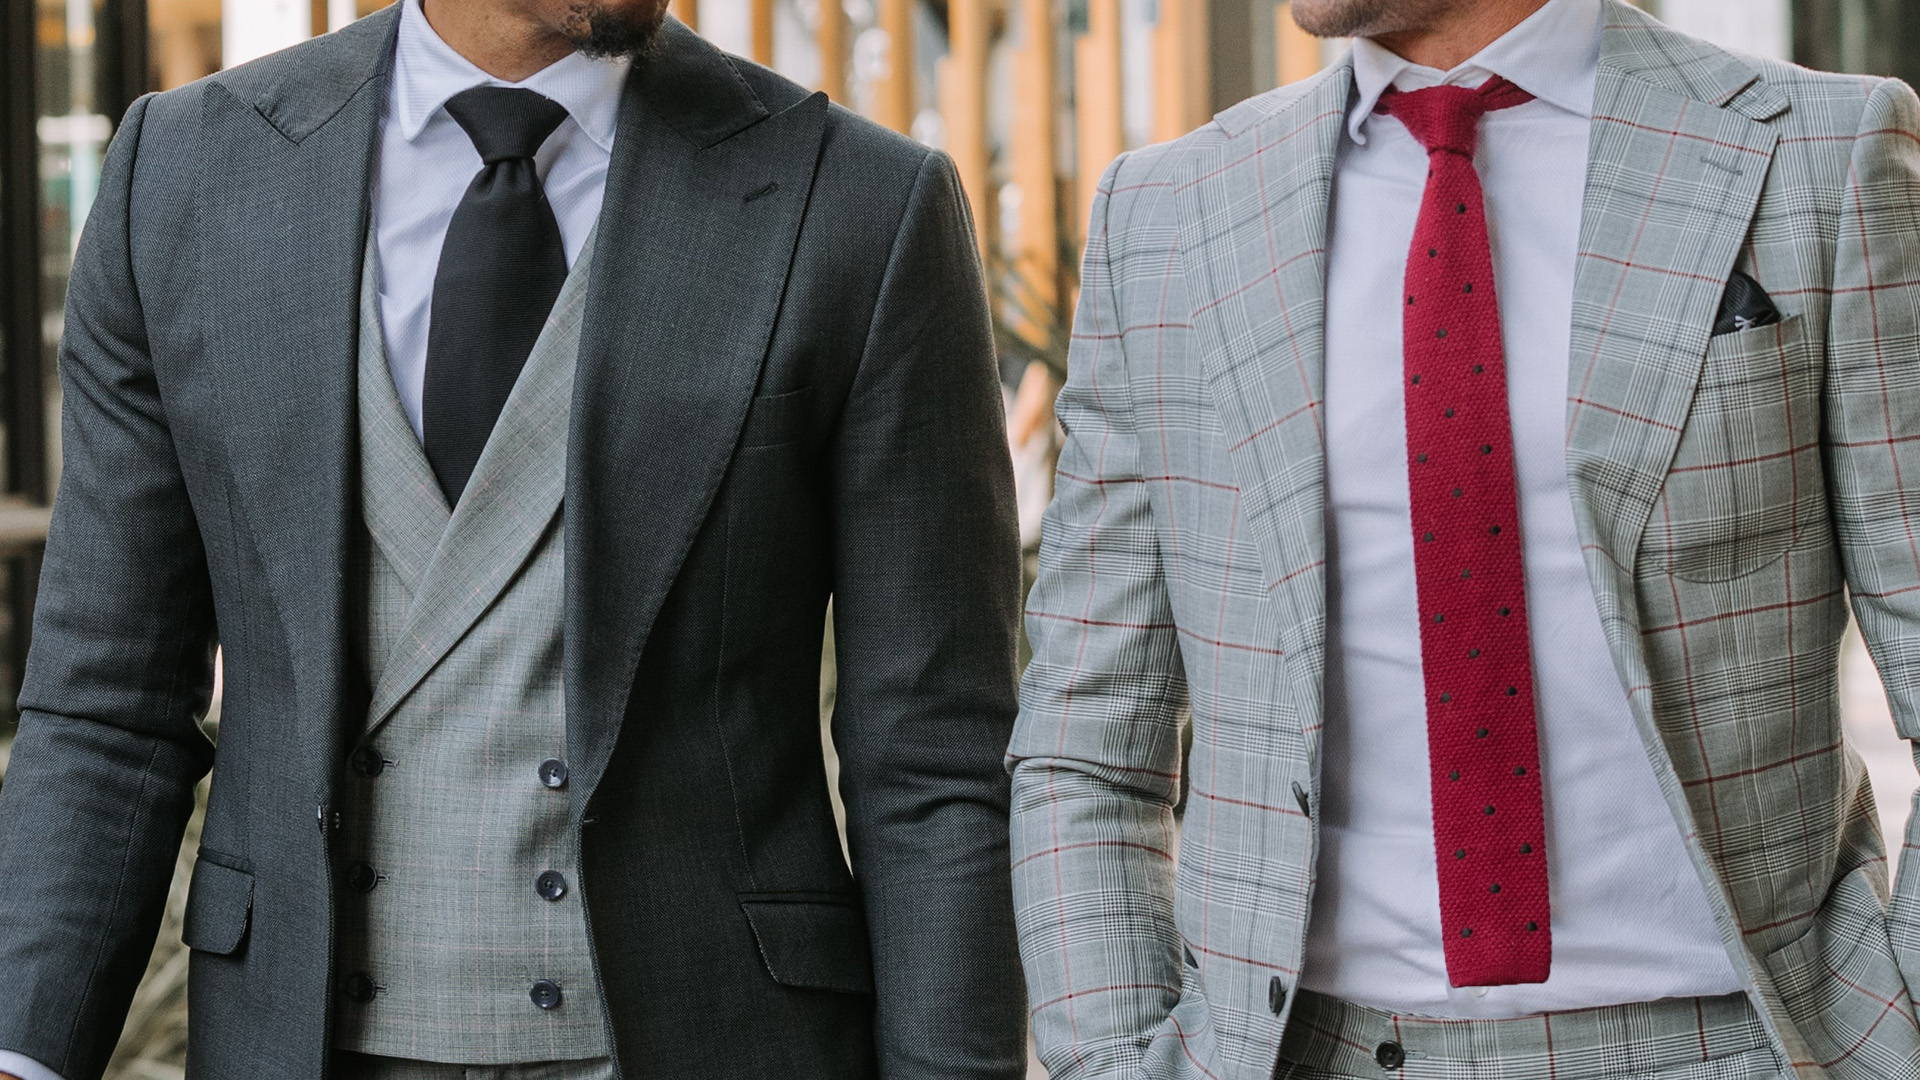 Knitted Ties: How to Tie One and 10 Events To Wear Them To